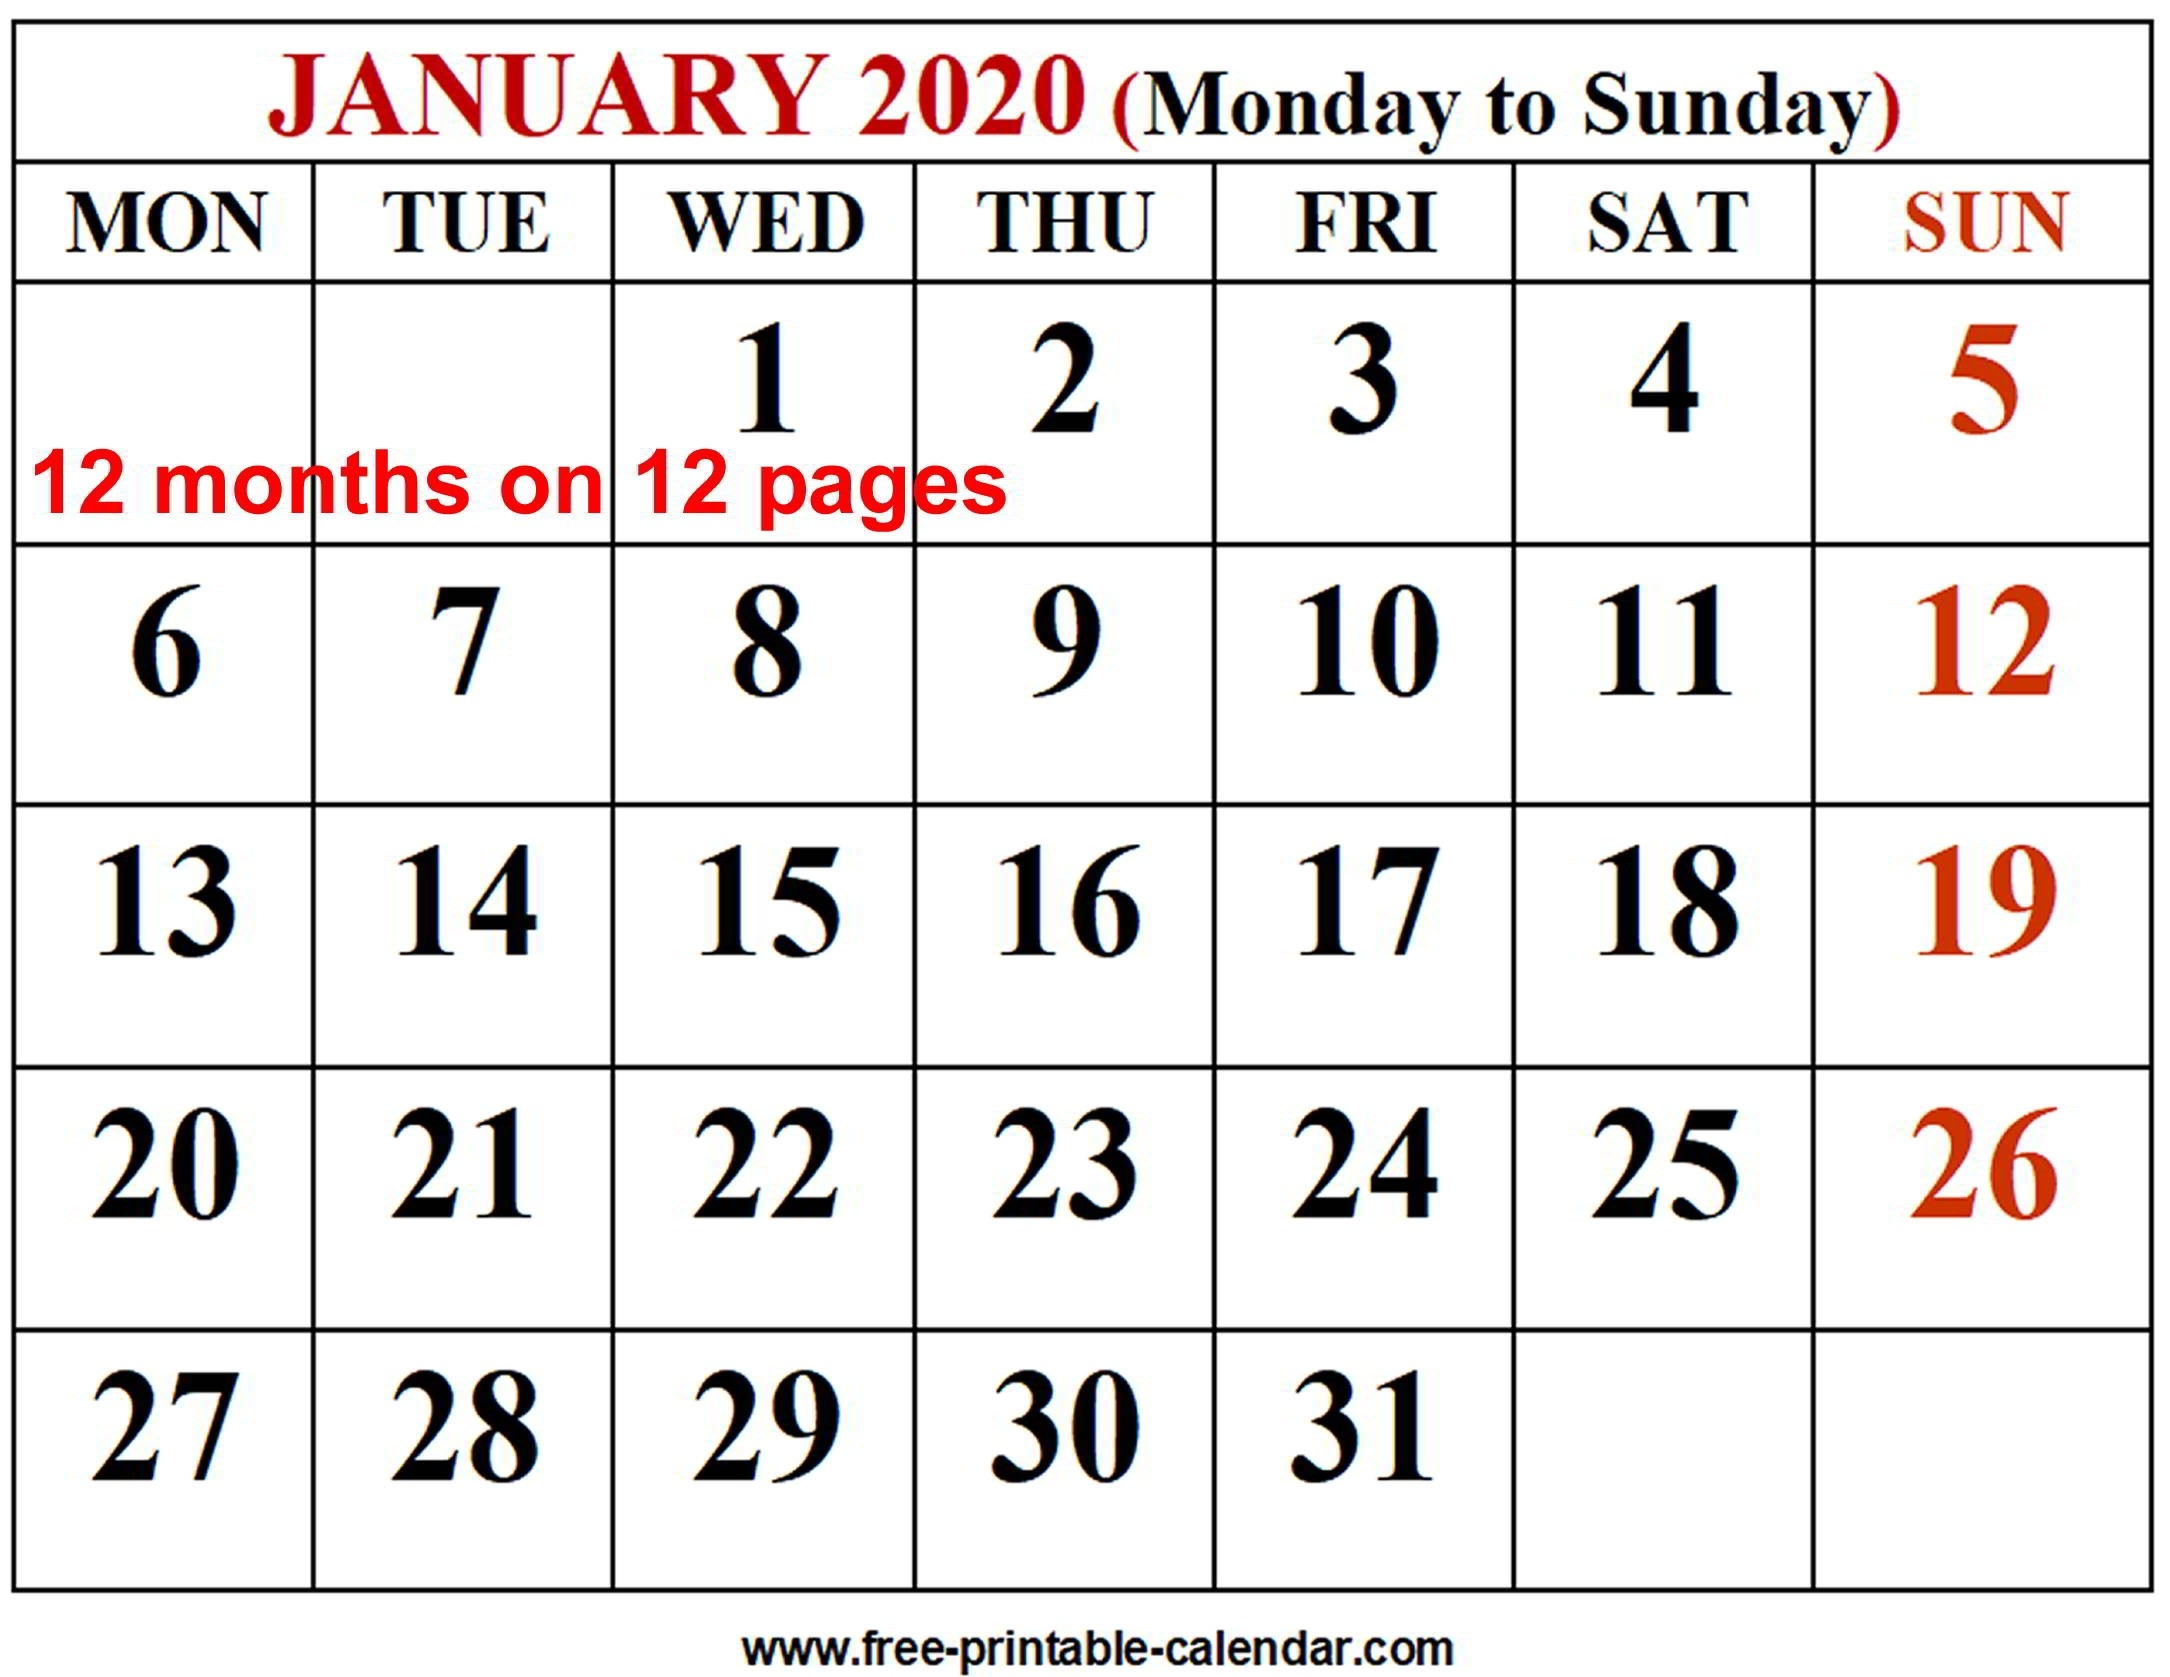 2020 Calendar Template - Free-Printable-Calendar-2 Page Monthly Calendar Template 2020